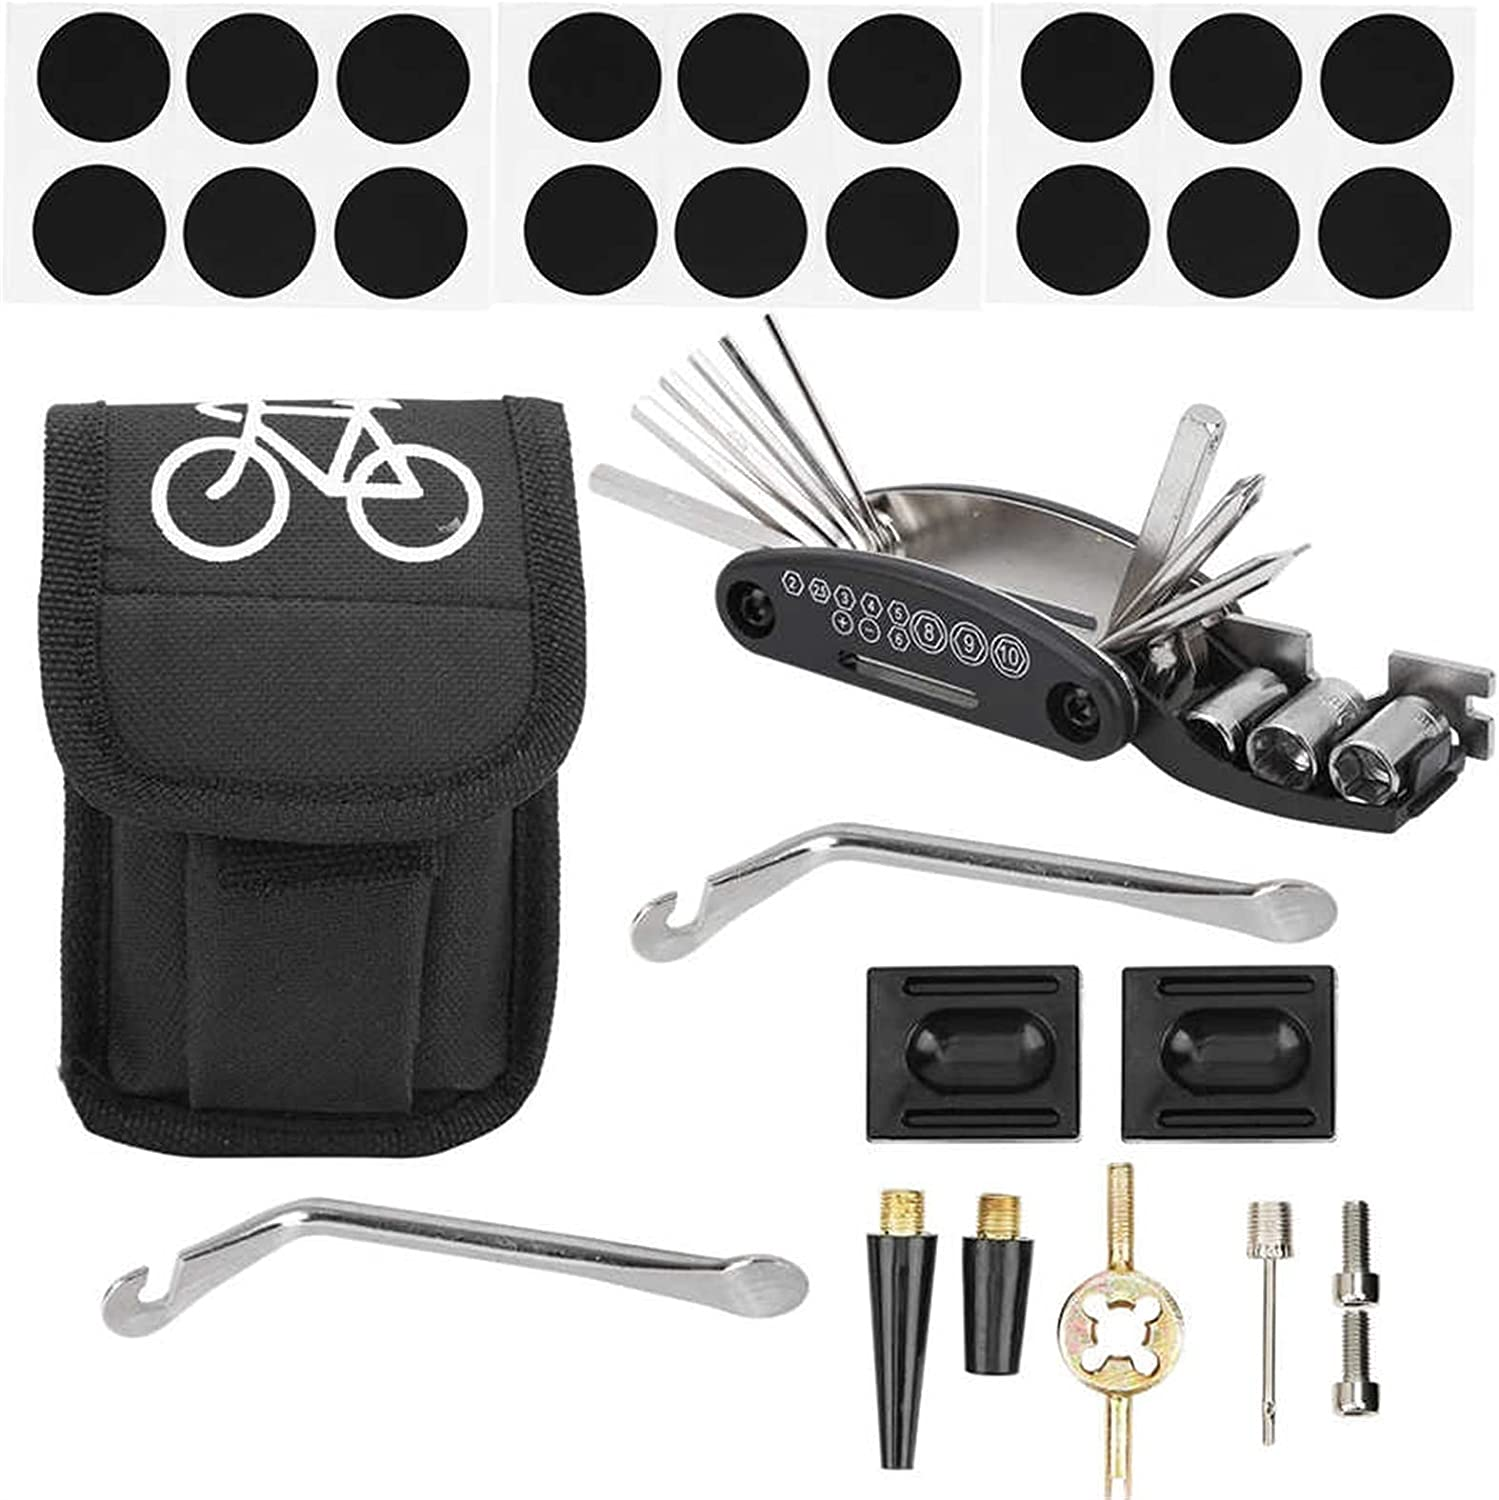 HHUPII 1 Set Bike Tyre Repair Kit Limited Special Price in Tire Bag Lever Portable 16 Max 53% OFF